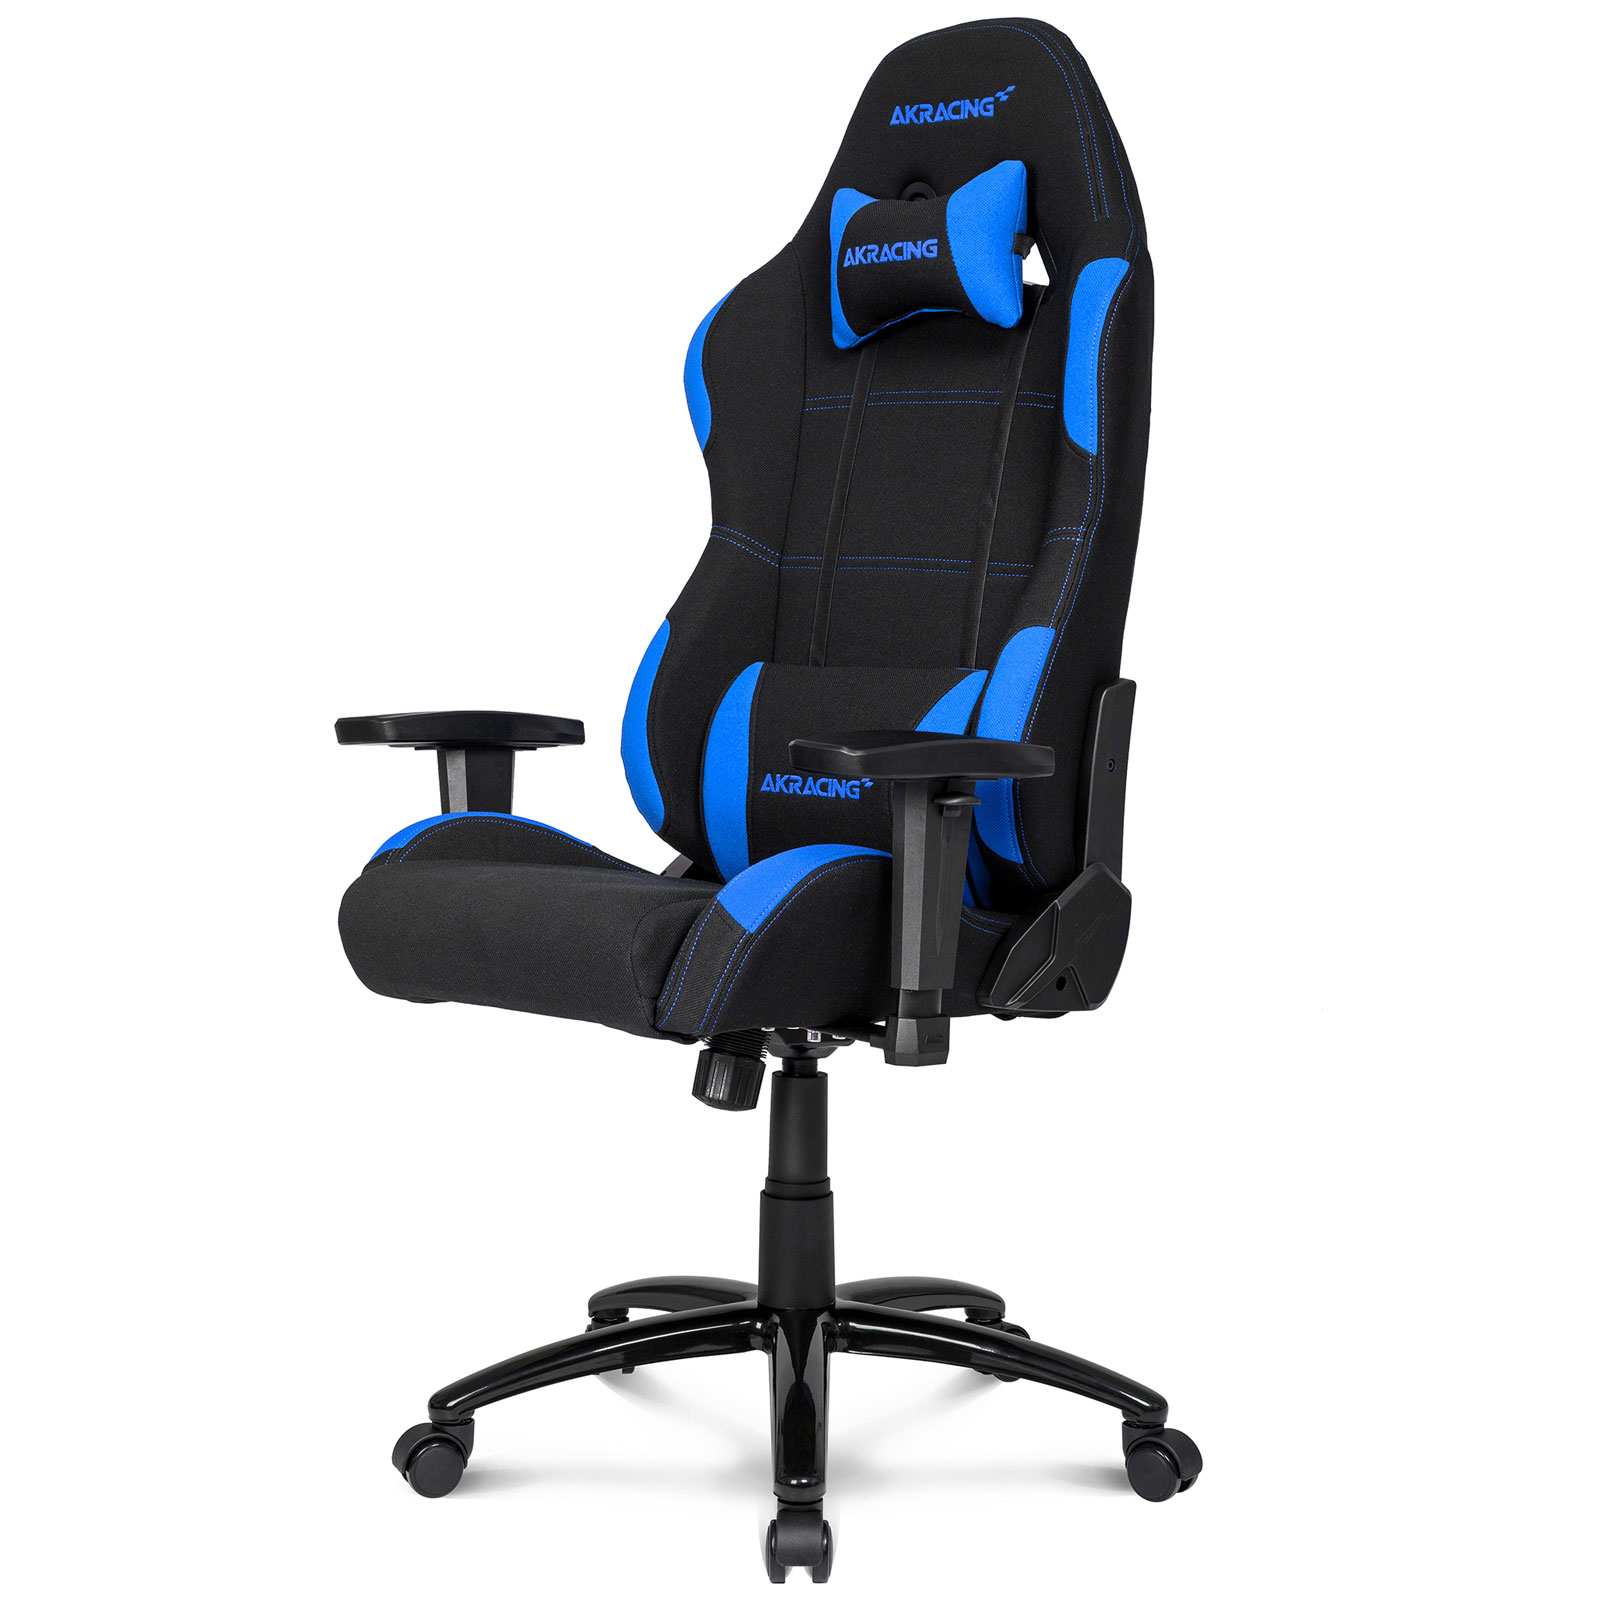 akracing gaming chair bleu fauteuil gamer akracing sur. Black Bedroom Furniture Sets. Home Design Ideas